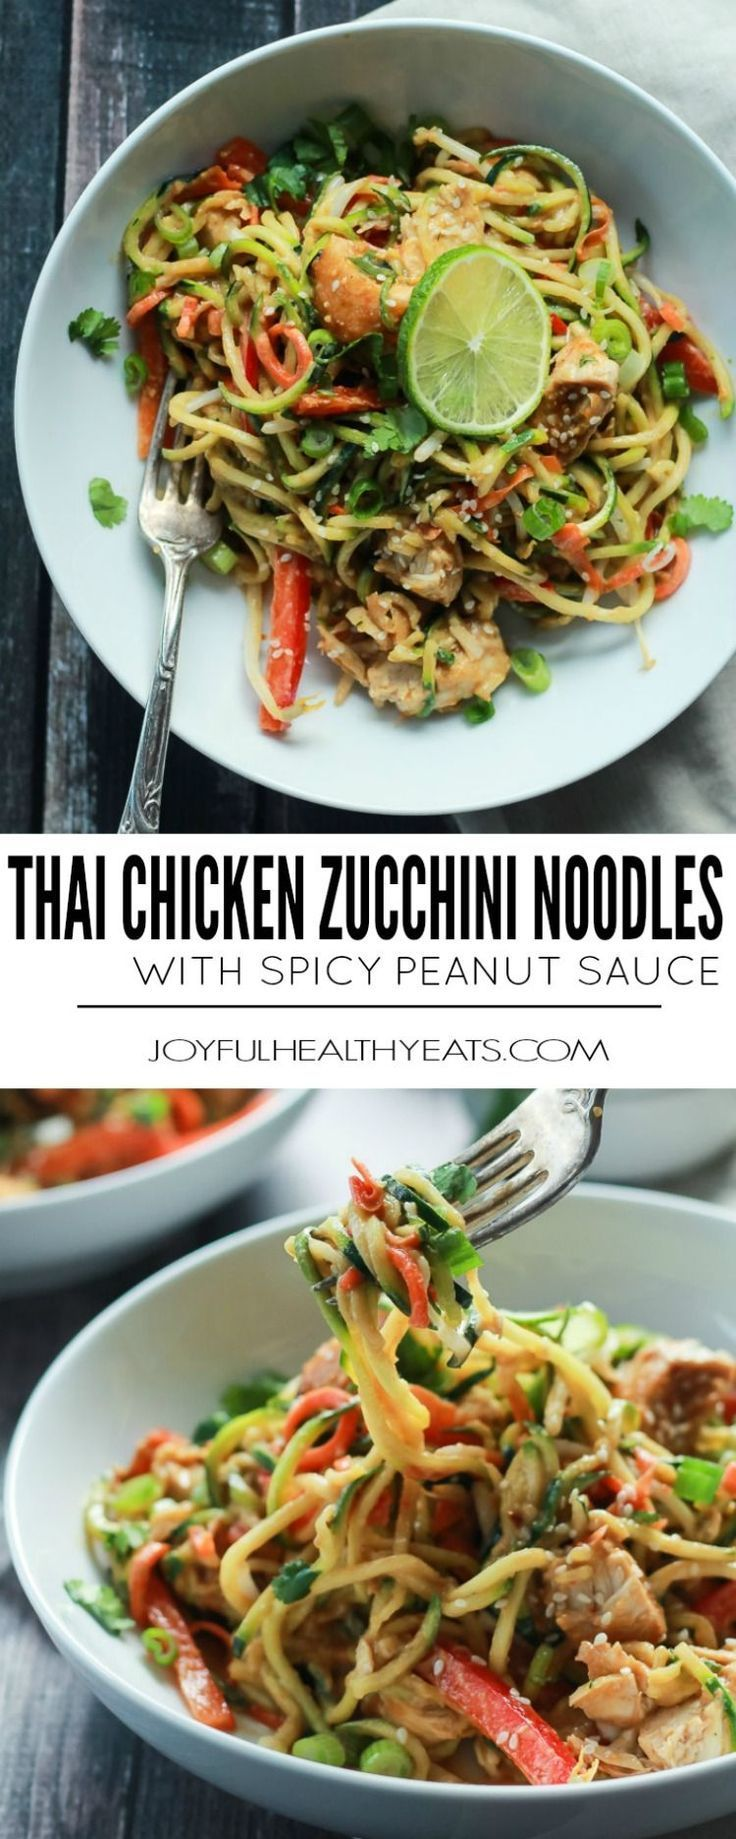 Zoodles are the star in this easy 15 minute Thai Chicken Zucchini Noodles recipe with Spicy Peanut Sauce only 363 calories and packed with a punch of flavor!   joyfulhealthyeats... #paleo #glutenfree